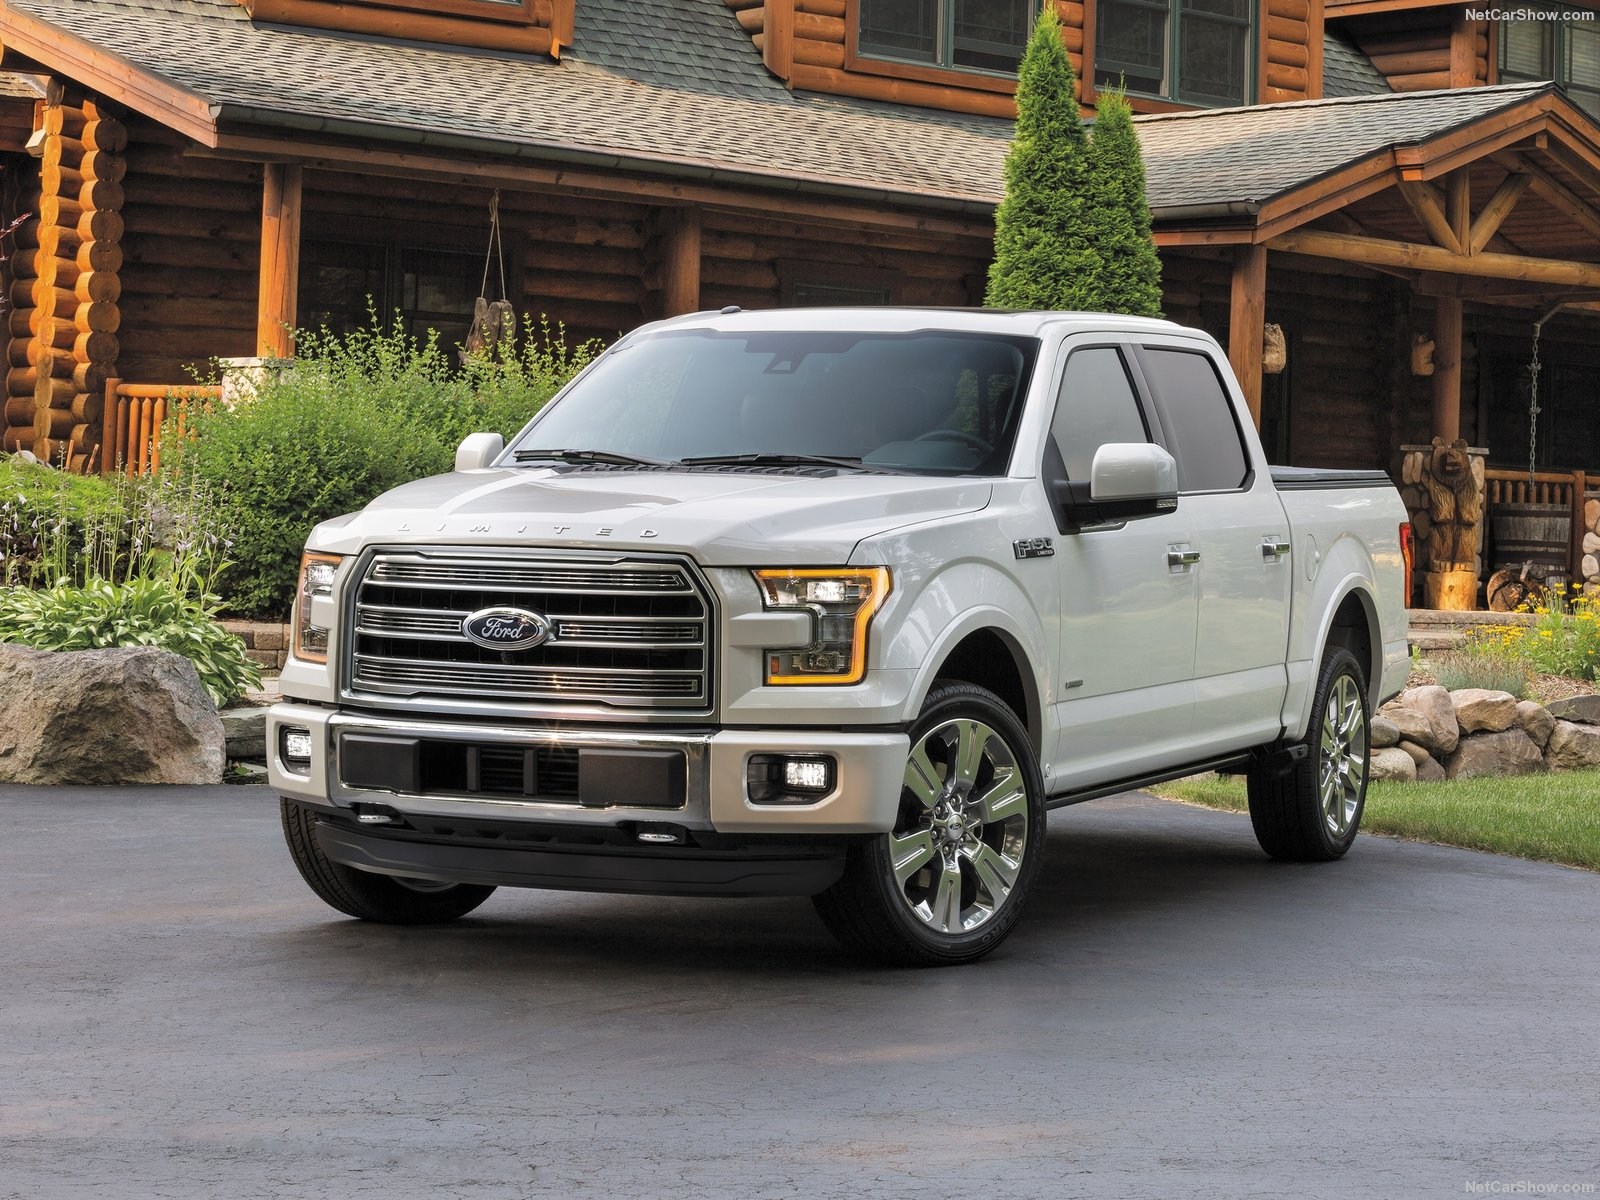 Ford F-150 Limited photo 146530